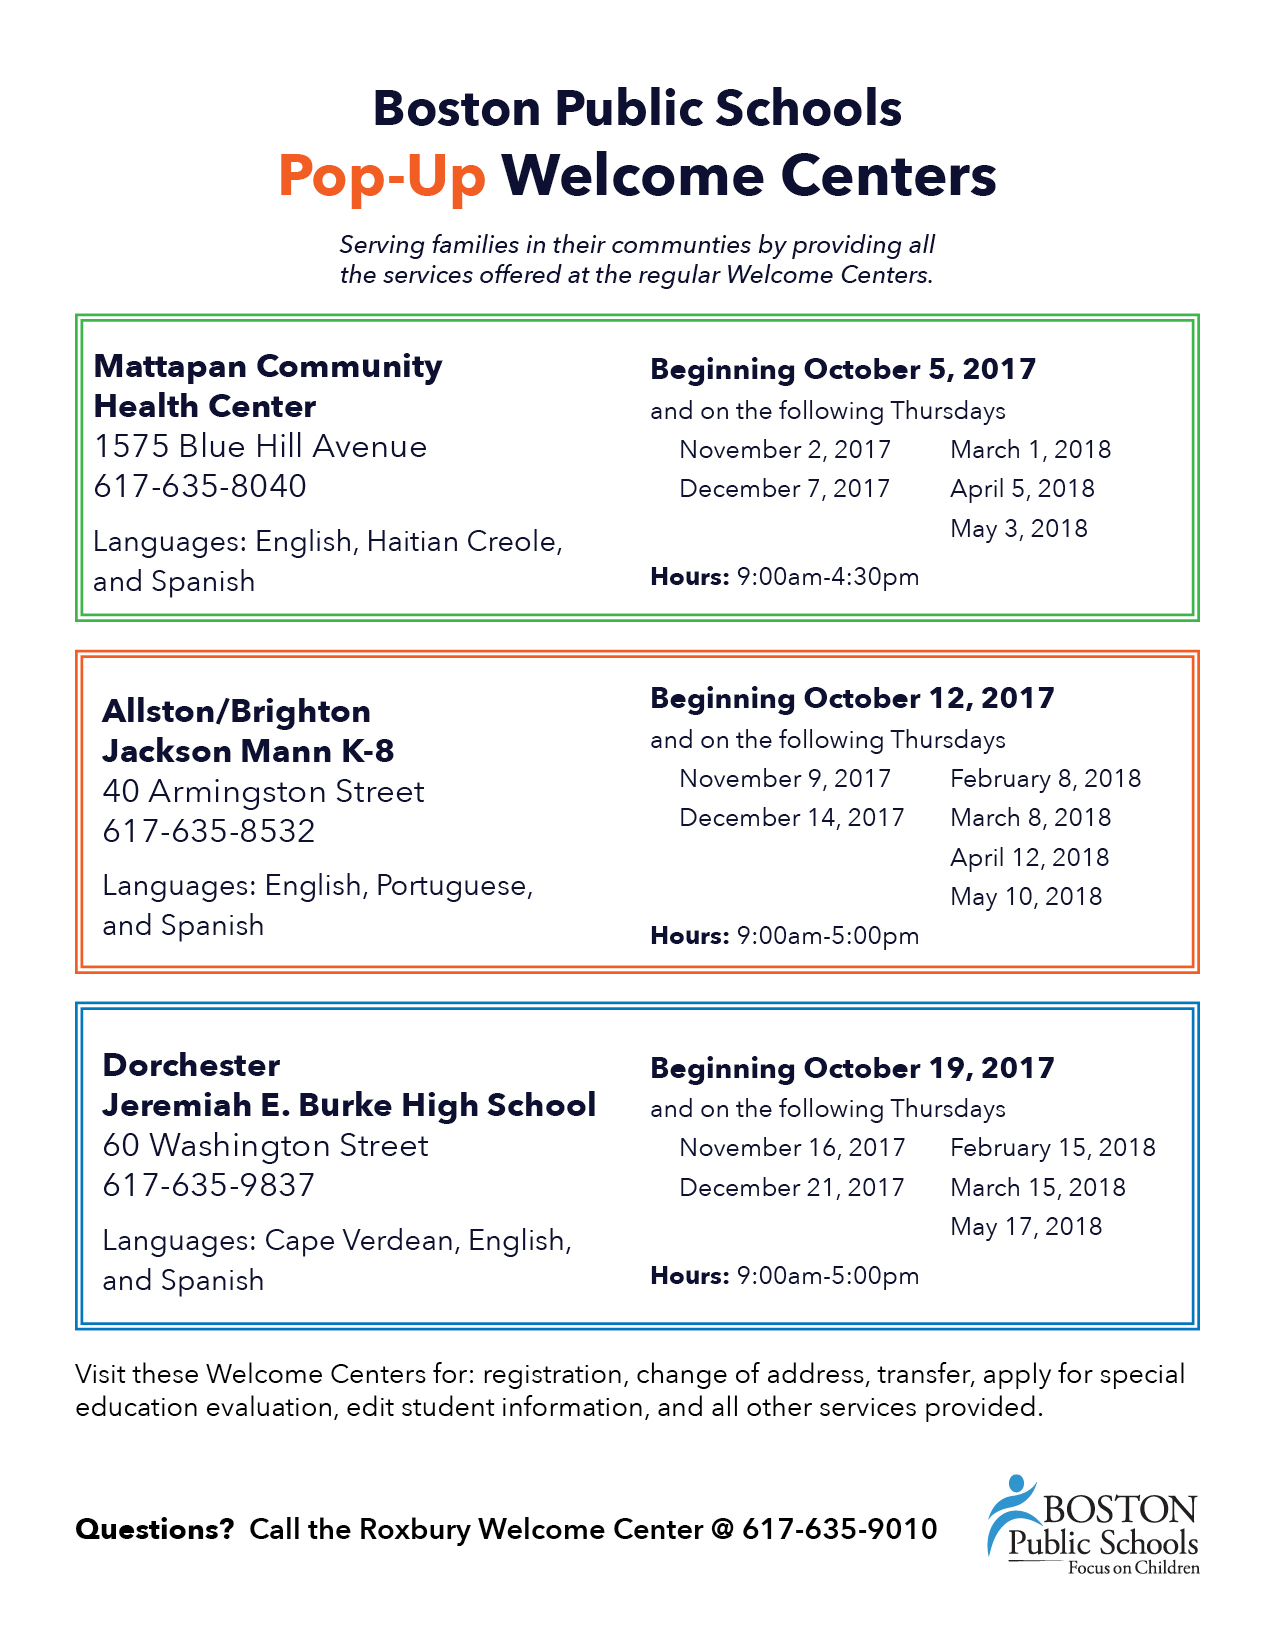 BPS Welcome Services / Welcome Center Locations